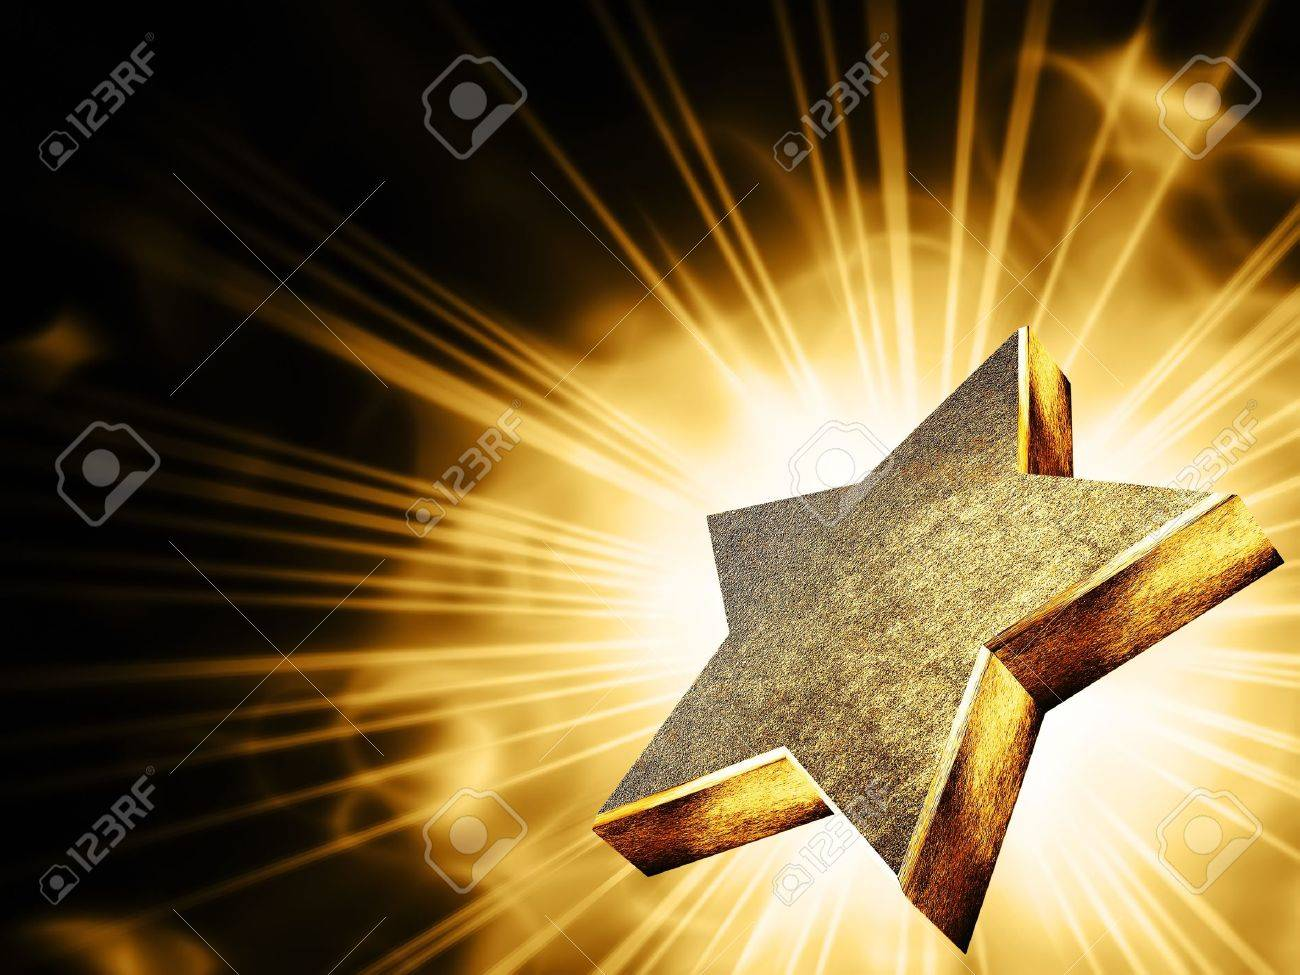 A gold star in the rays of light Stock Photo - 14636480